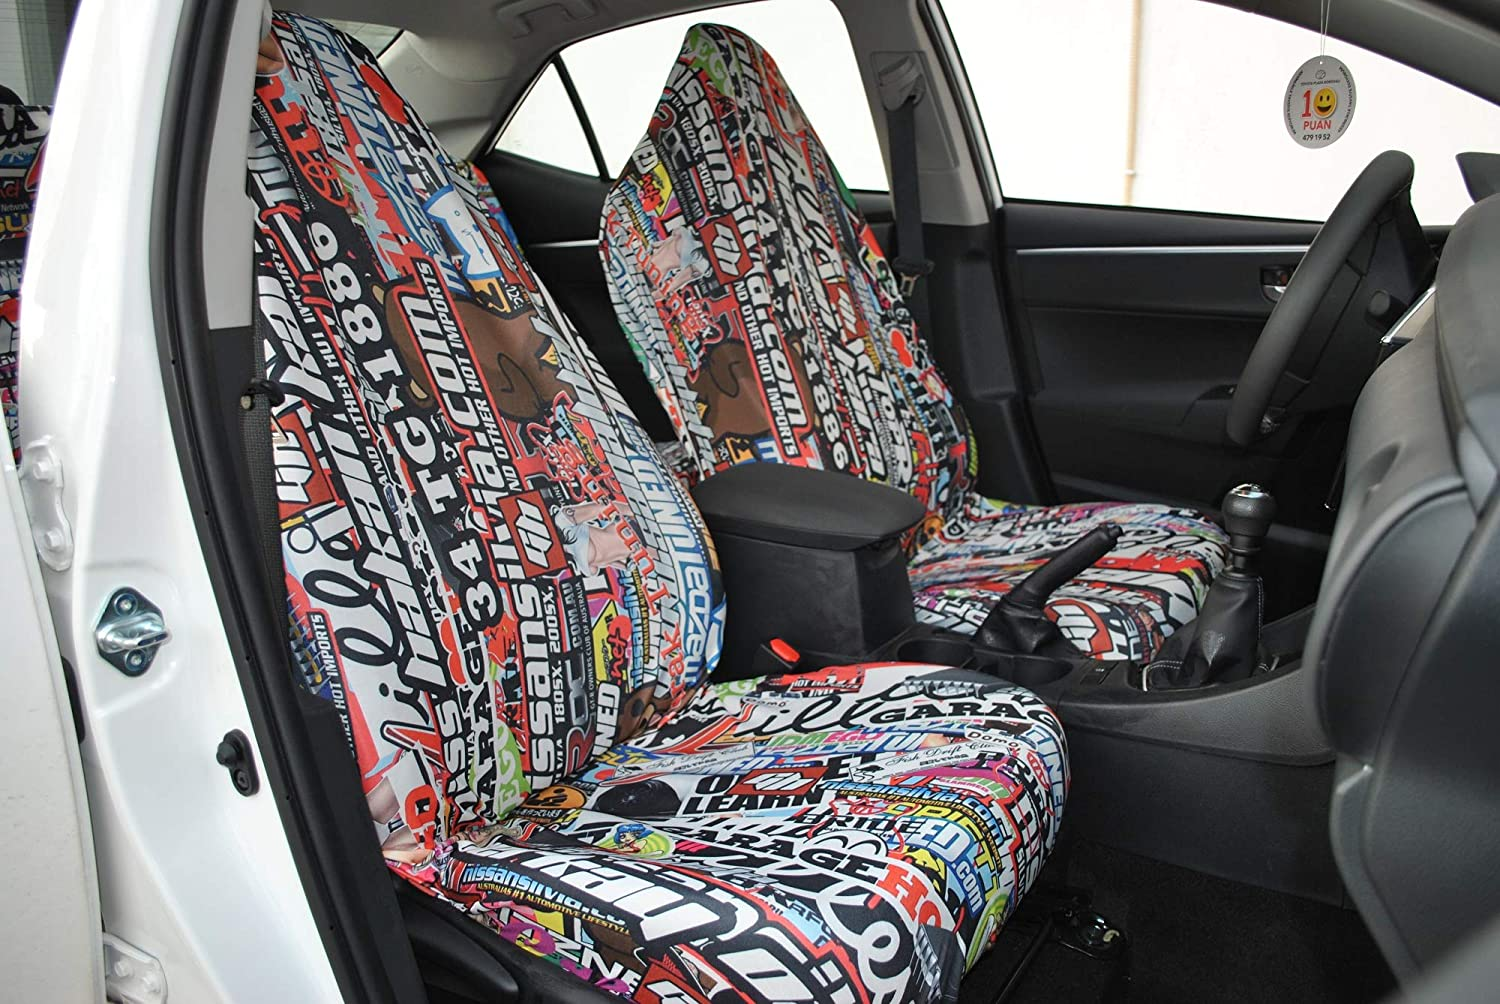 High quality Seat Cover and Protector flexible assembling easy 2 fro washable High quality new